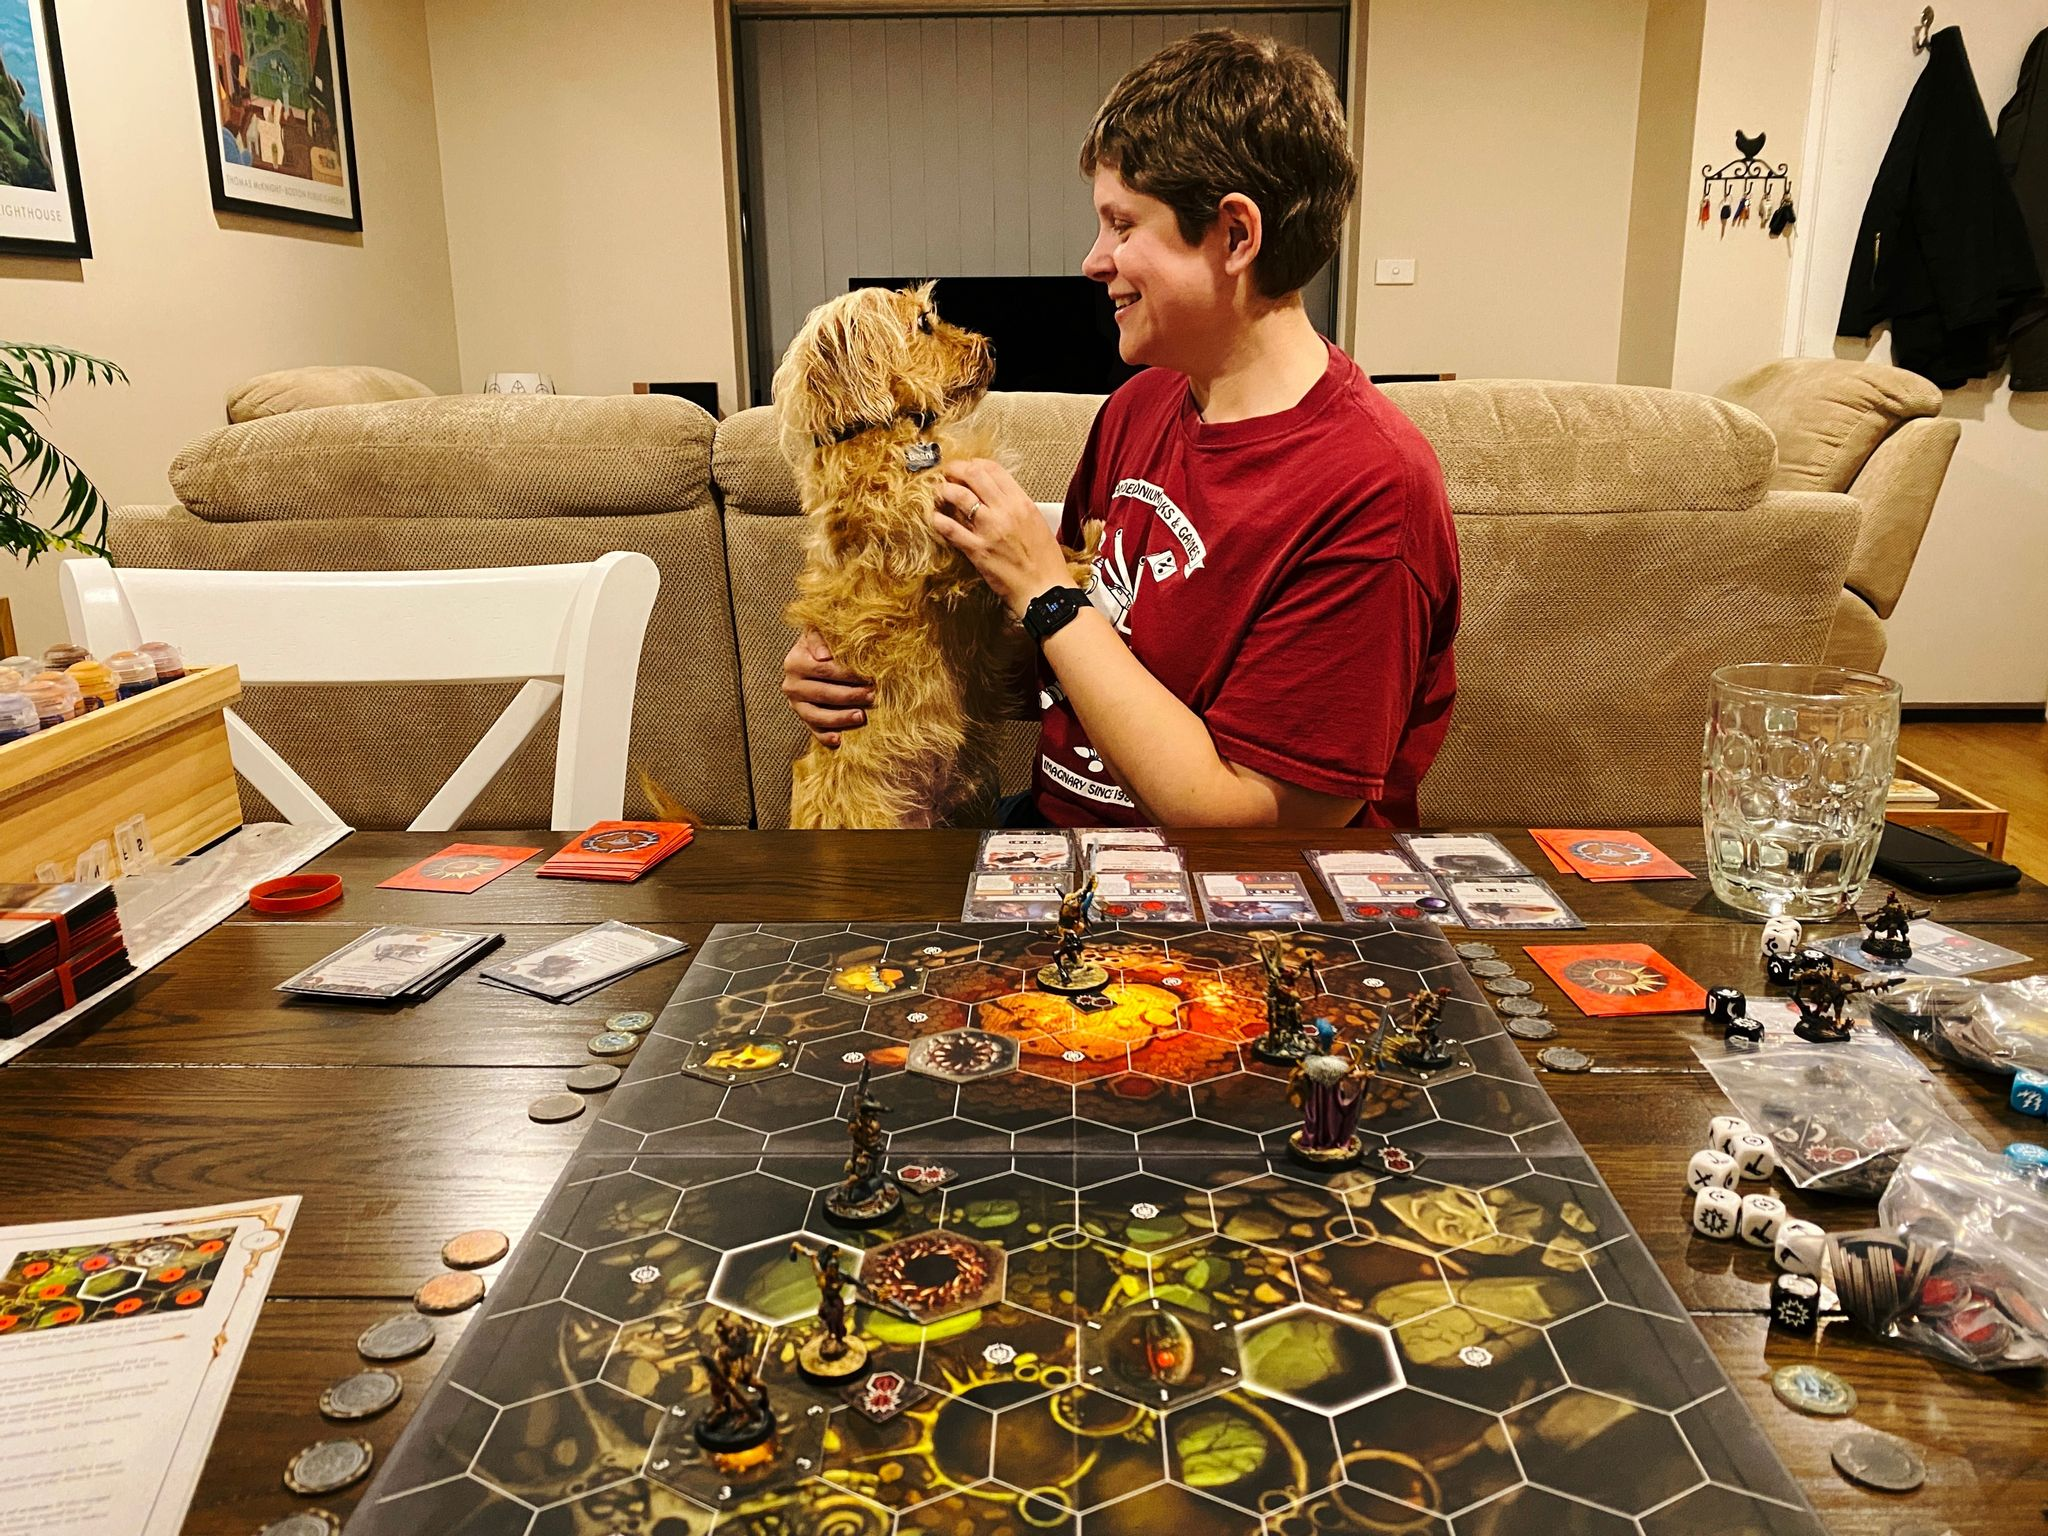 A photo taken across a dining table that has a game board with miniatures on it, and various dice and cards and counters scattered around it. On the other side a white woman with short brown hair is sitting with a small scruffy blonde dog in her lap who's sitting upright and propping himself up on her chest while she scritches him.